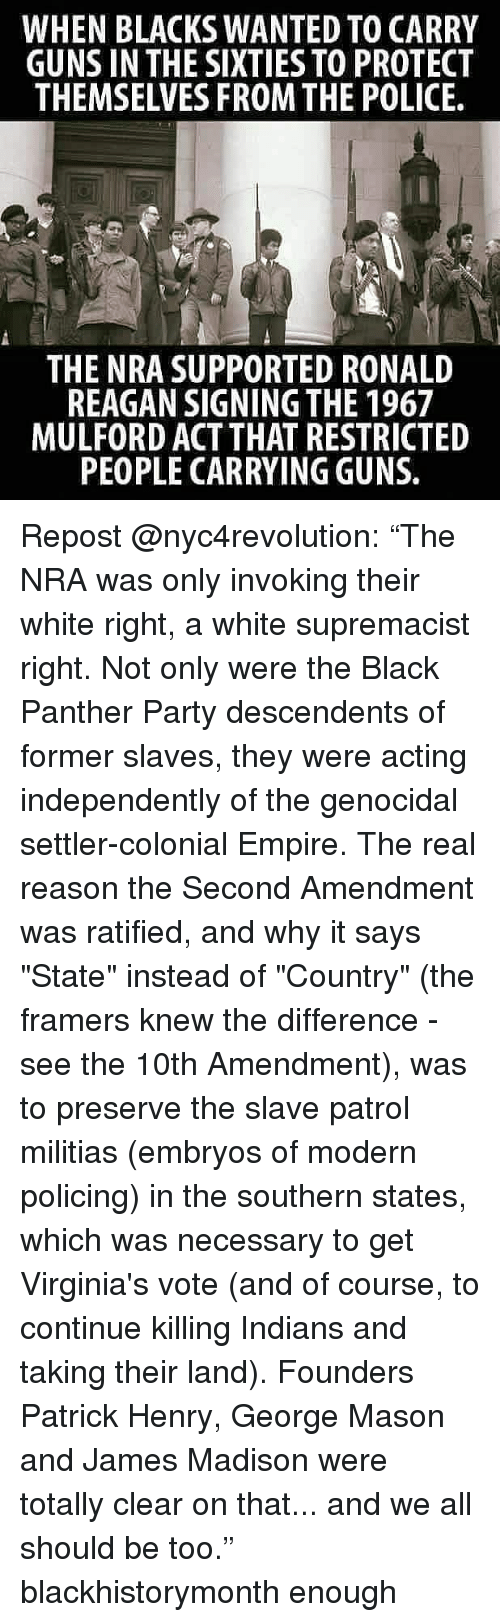 "Empire, Guns, and Memes: WHEN BLACKS WANTED TO CARRY  GUNS IN THE SIXTIES TO PROTECT  THEMSELVES FROM THE POLICE  THE NRA SUPPORTED RONALD  REAGAN SIGNING THE 1967  MULFORD ACT THAT RESTRICTED  PEOPLE CARRYING GUNS. Repost @nyc4revolution: ""The NRA was only invoking their white right, a white supremacist right. Not only were the Black Panther Party descendents of former slaves, they were acting independently of the genocidal settler-colonial Empire. The real reason the Second Amendment was ratified, and why it says ""State"" instead of ""Country"" (the framers knew the difference - see the 10th Amendment), was to preserve the slave patrol militias (embryos of modern policing) in the southern states, which was necessary to get Virginia's vote (and of course, to continue killing Indians and taking their land). Founders Patrick Henry, George Mason and James Madison were totally clear on that... and we all should be too."" blackhistorymonth enough"